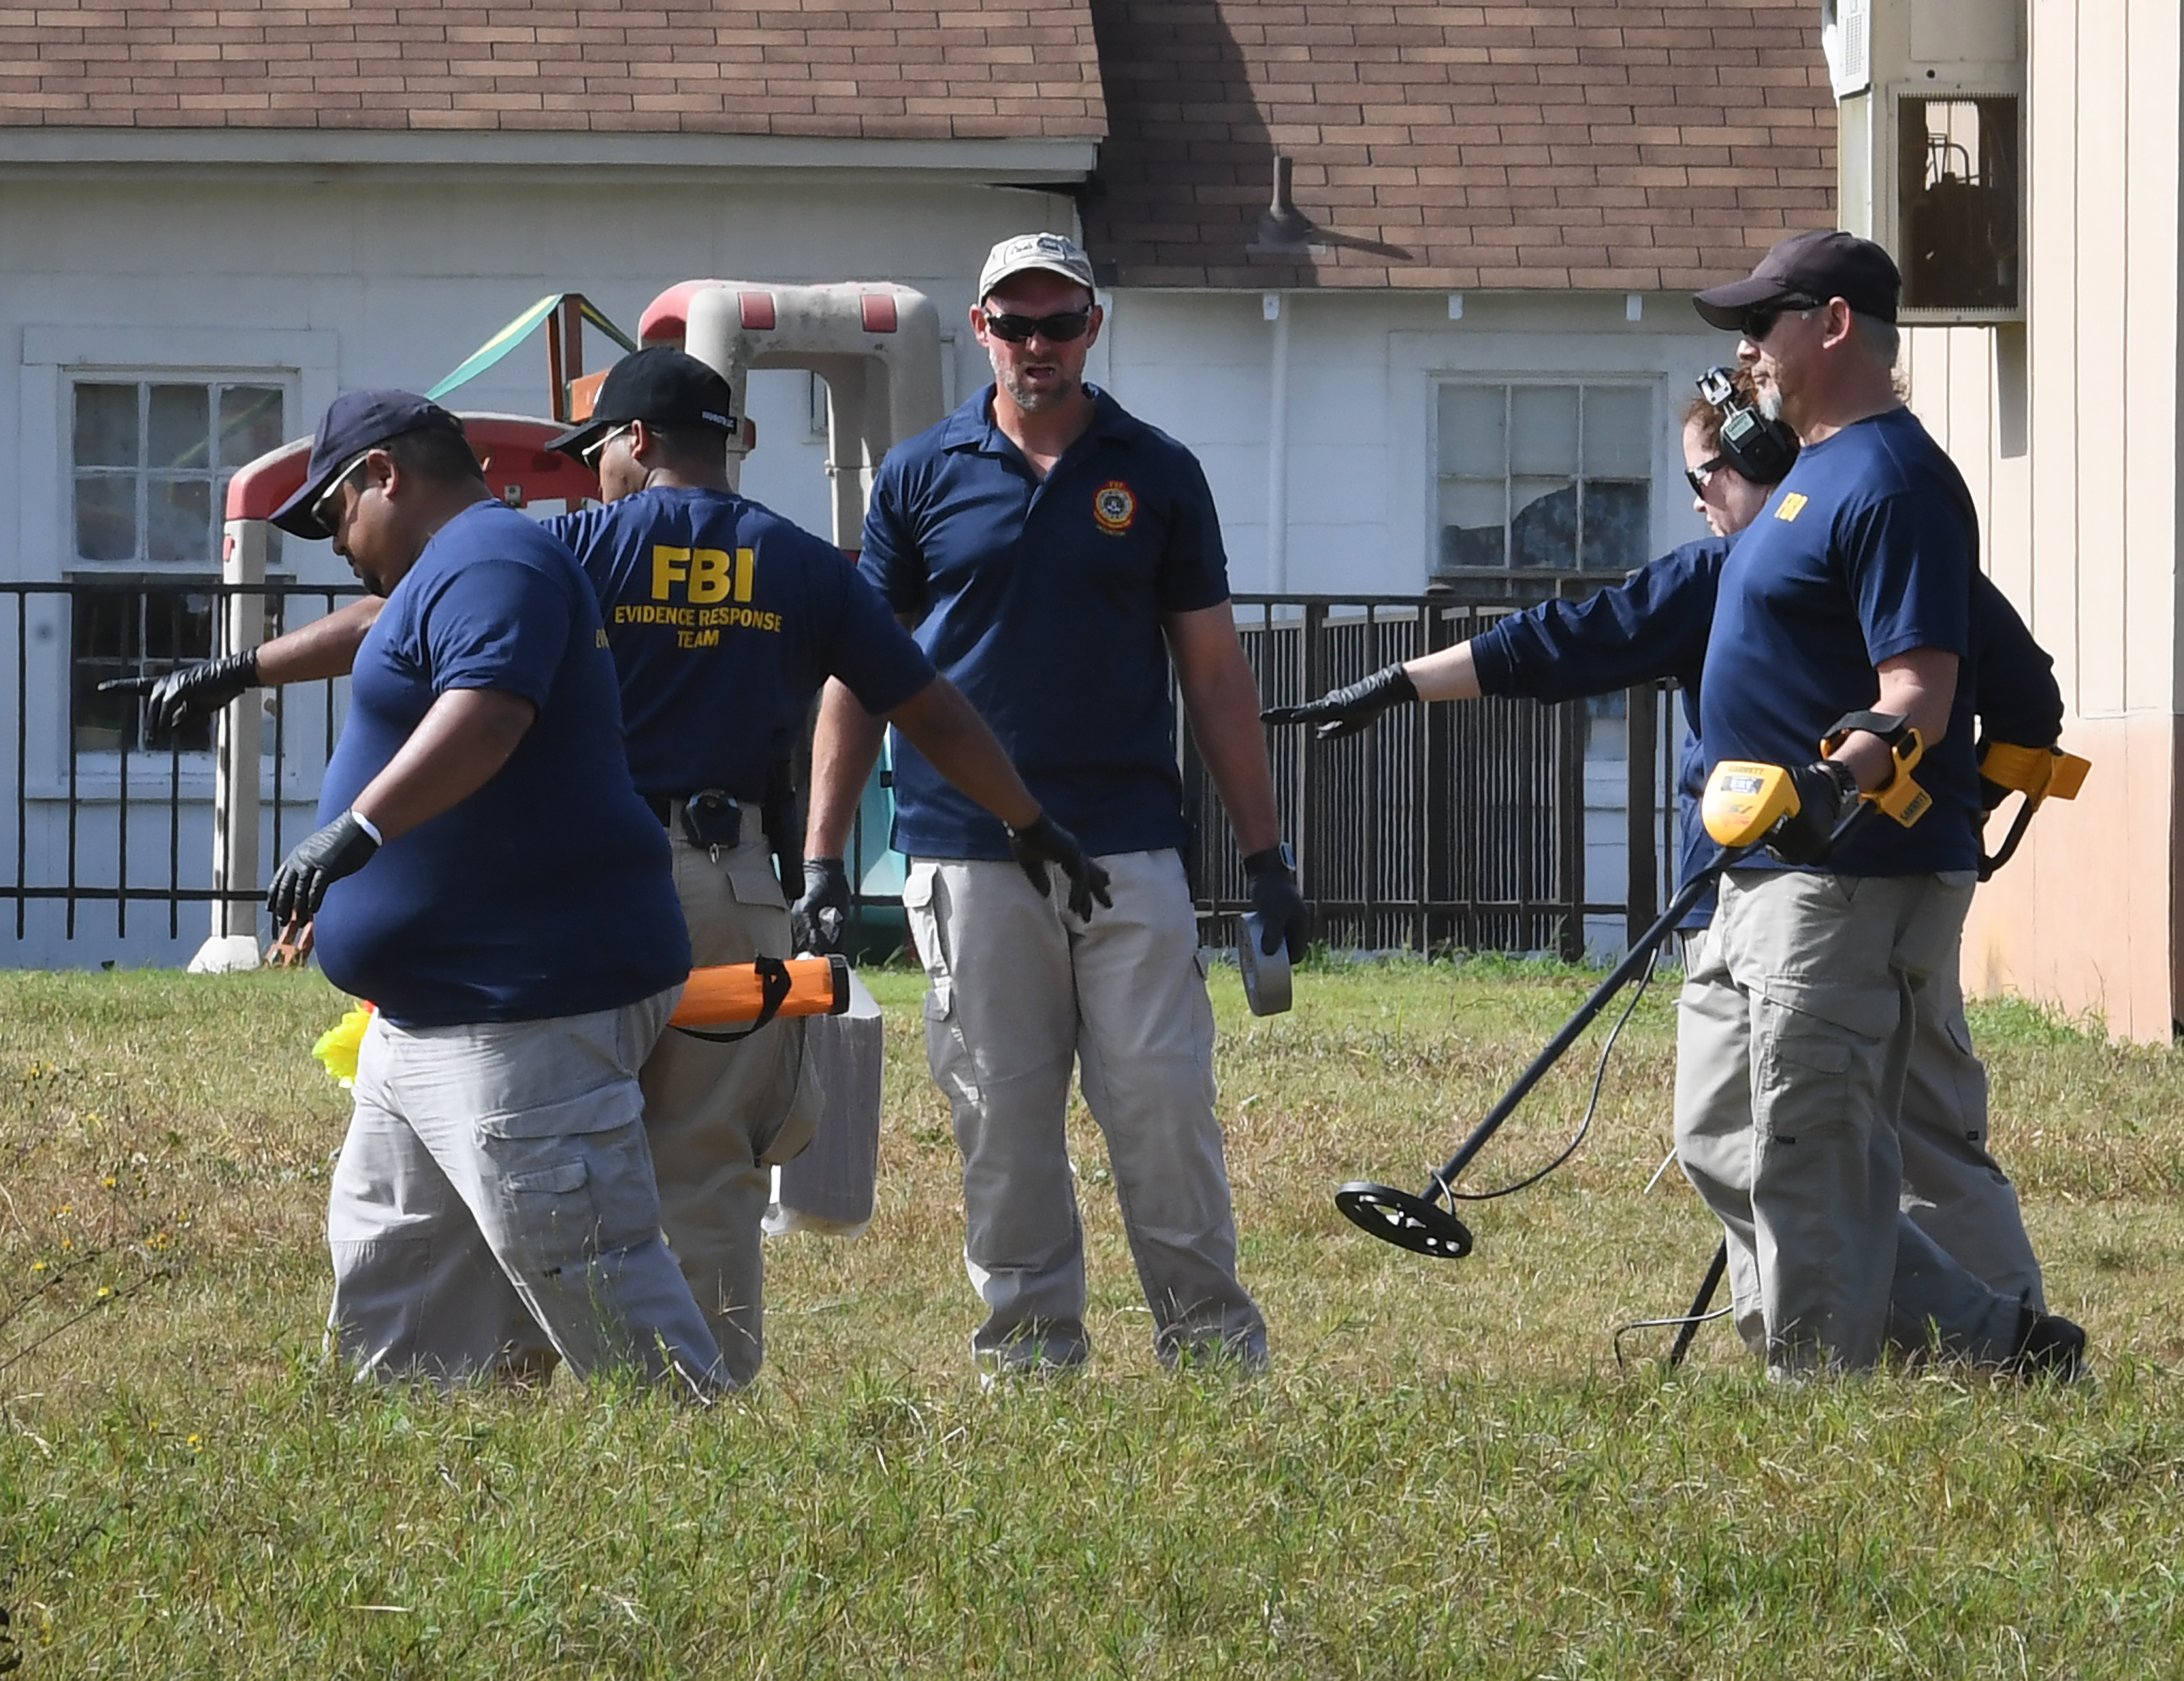 "<div class=""meta image-caption""><div class=""origin-logo origin-image none""><span>none</span></div><span class=""caption-text"">FBI agents search for clues at the entrance to the First Baptist Church, after a mass shooting that killed 26 people in Sutherland Springs, Texas on November 6, 2017. (MARK RALSTON/AFP/Getty Images)</span></div>"